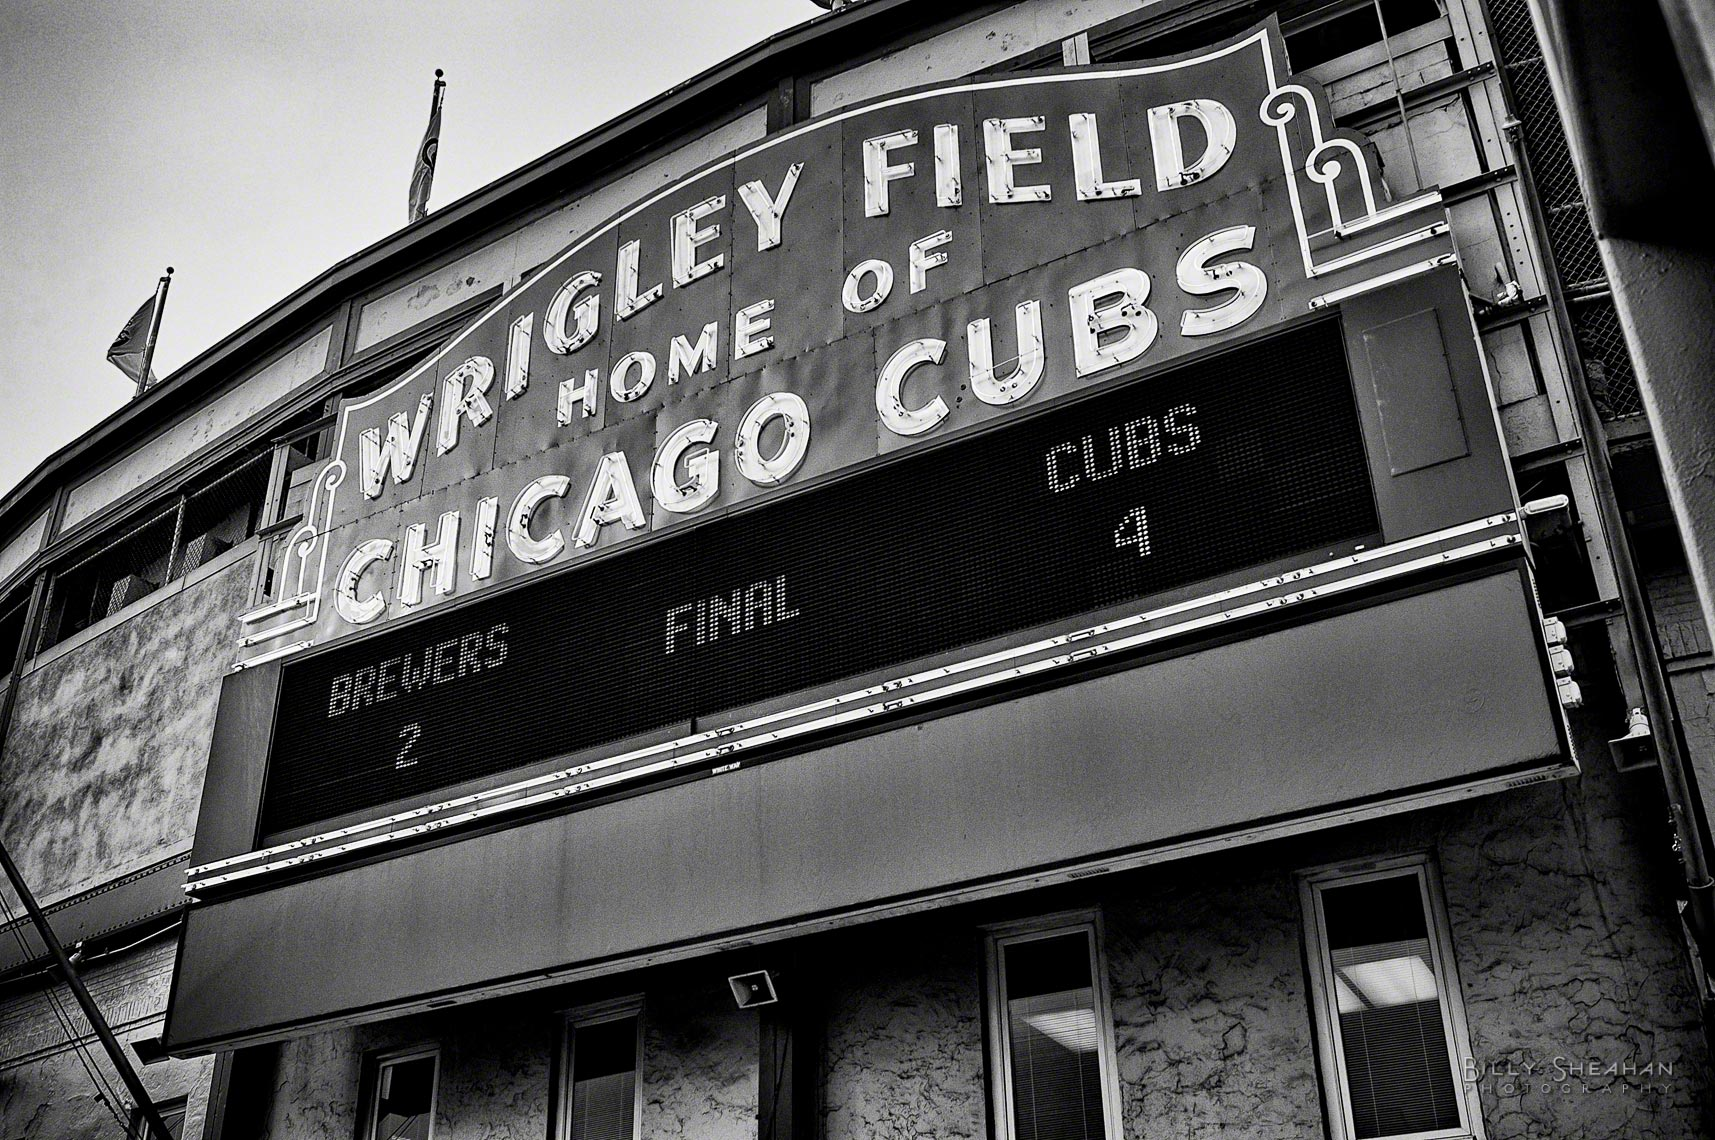 Wrigley_Field_Final_Score_BrewersVsCubs25Aug04-047_BW_D.jpg